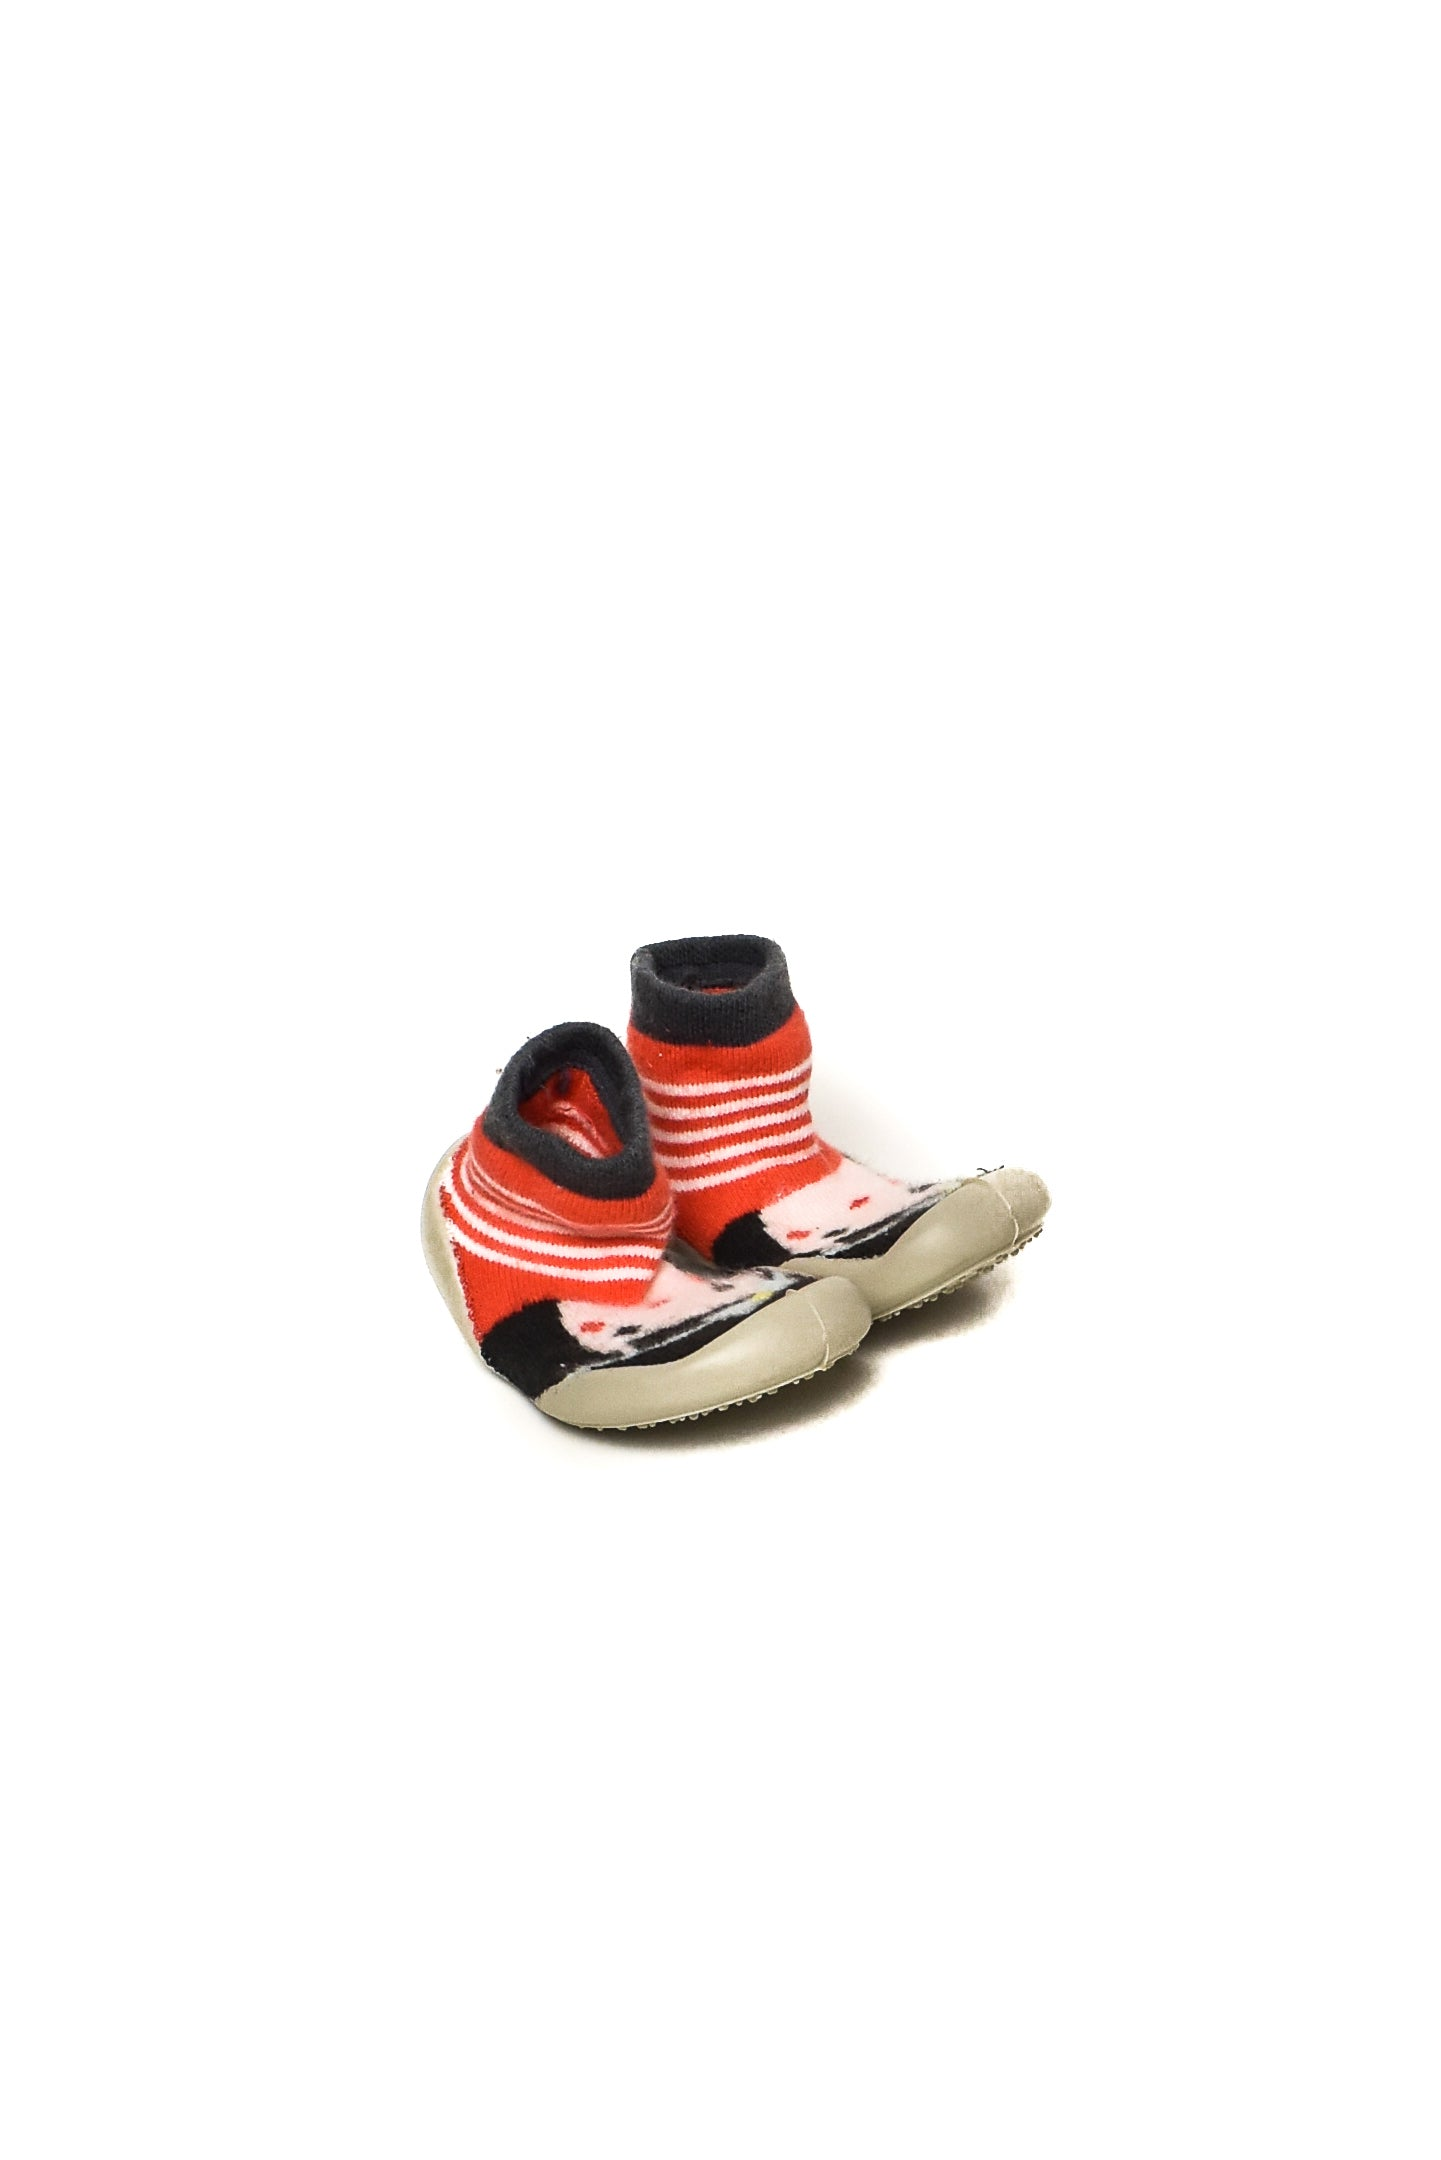 10007988 Collegien Baby~ Shoes 12-18M (EU 20/21) at Retykle